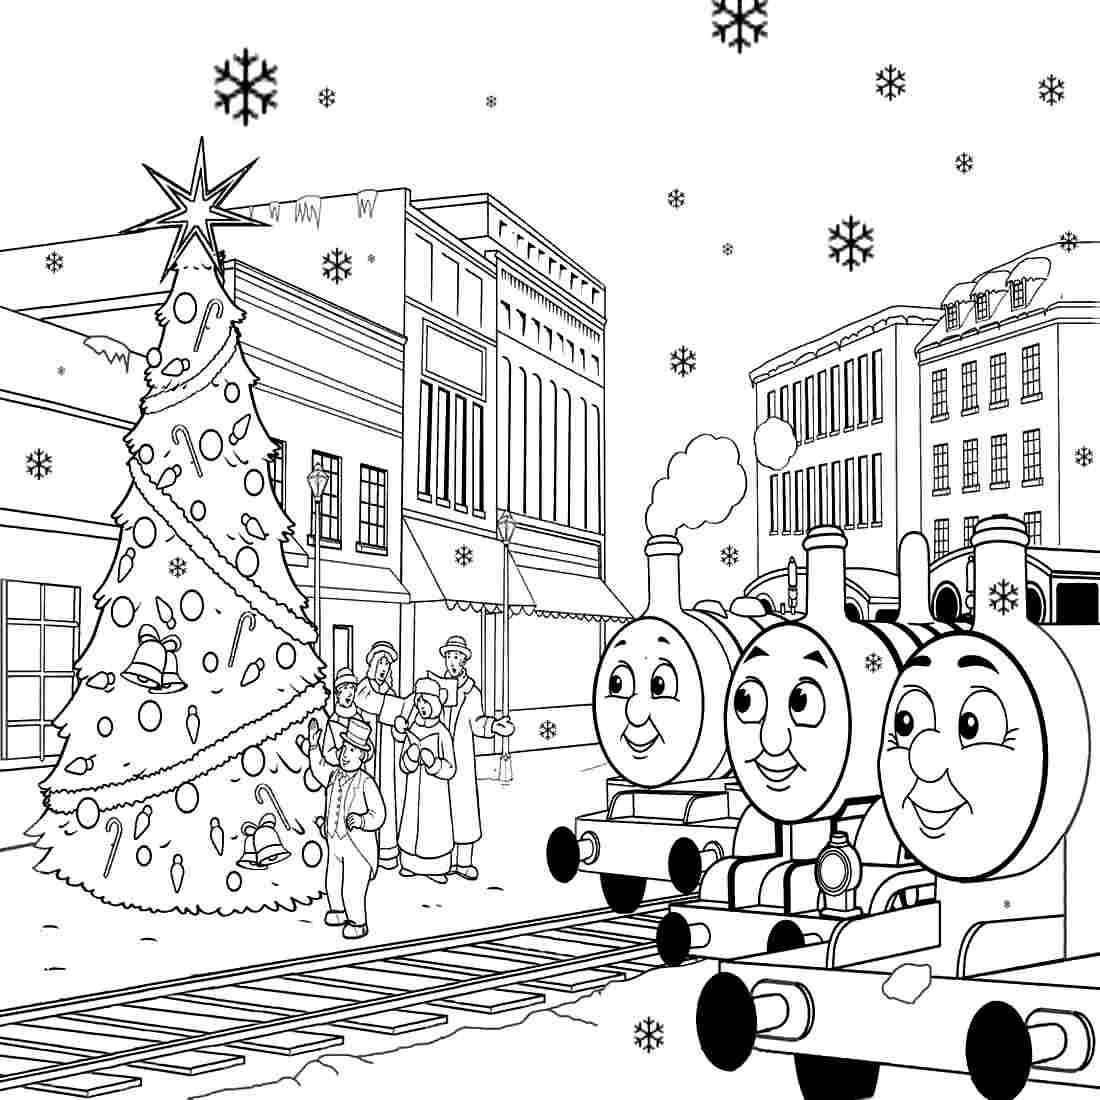 Thomas the train coloring sheets printable - Thomas The Train Coloring Pages To Print Free For Toddlers